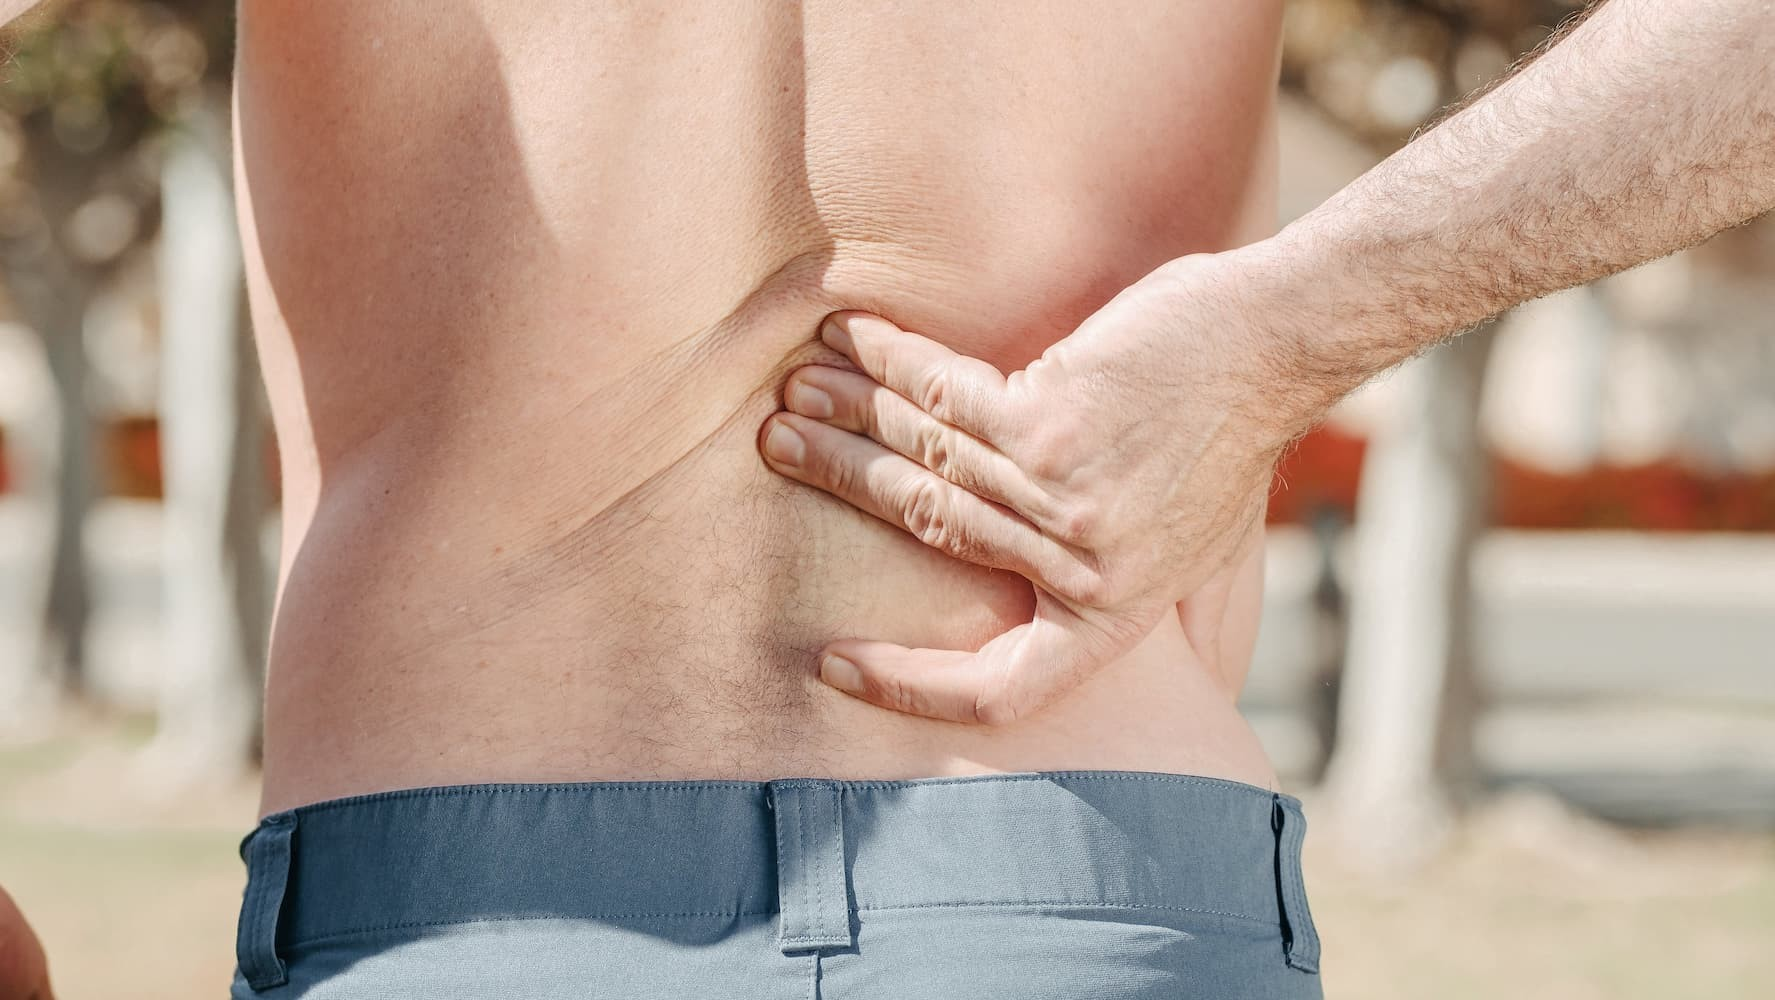 Do You Listen to Your Back Pain?